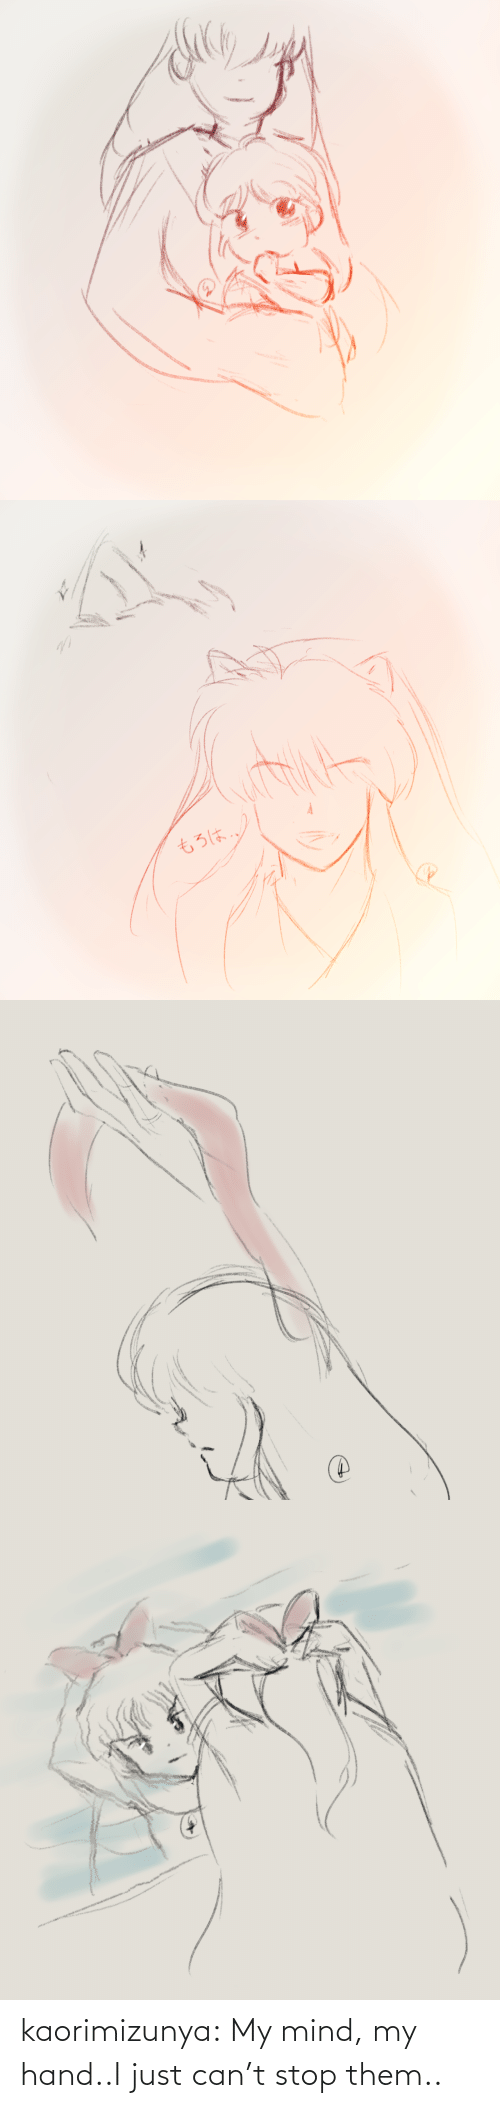 My Hand: kaorimizunya: My mind, my hand..I just can't stop them..